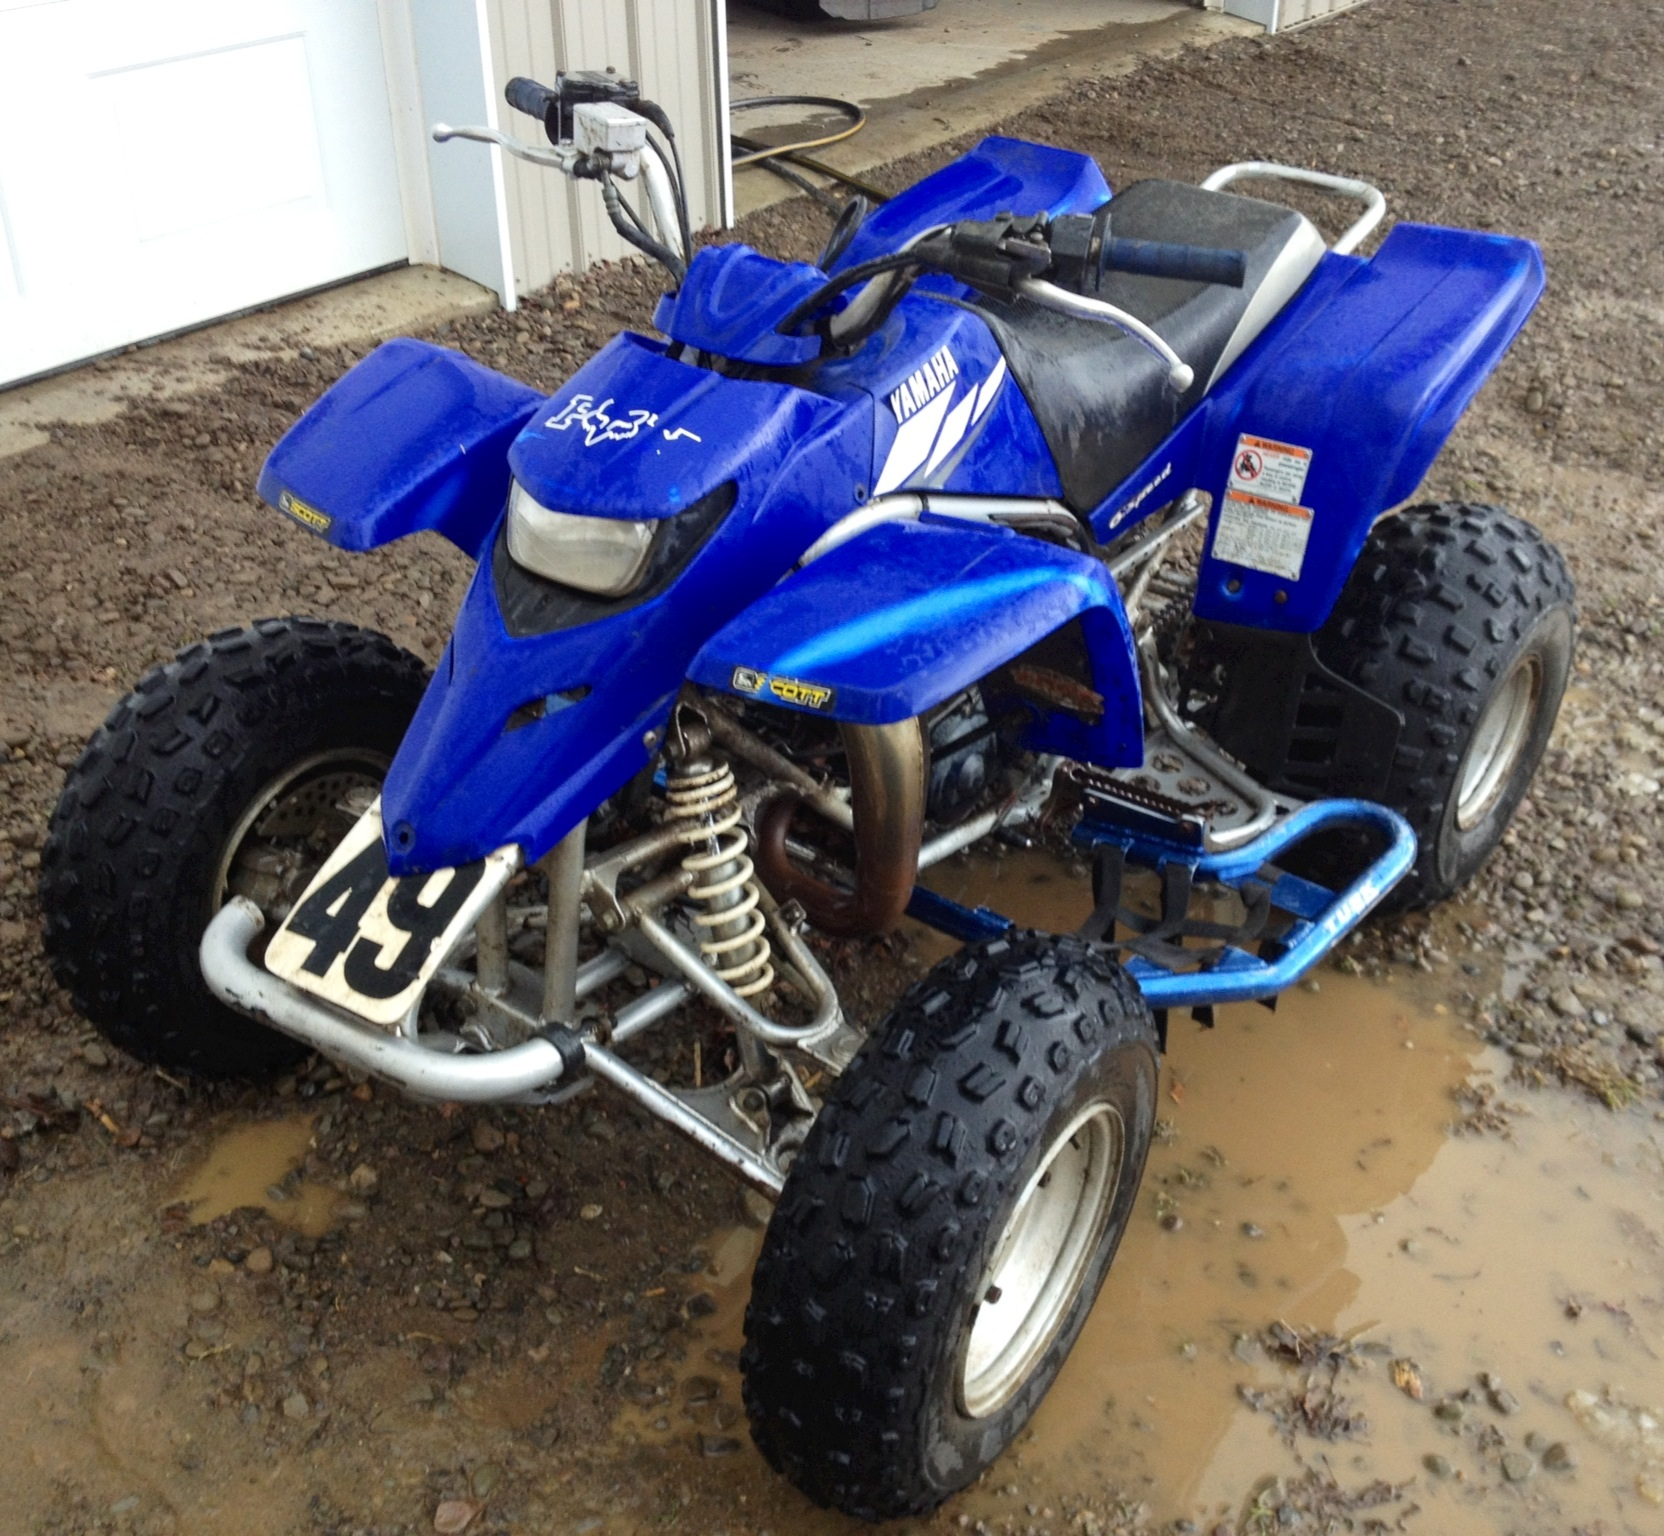 Yamaha X Quad Bikes For Sale